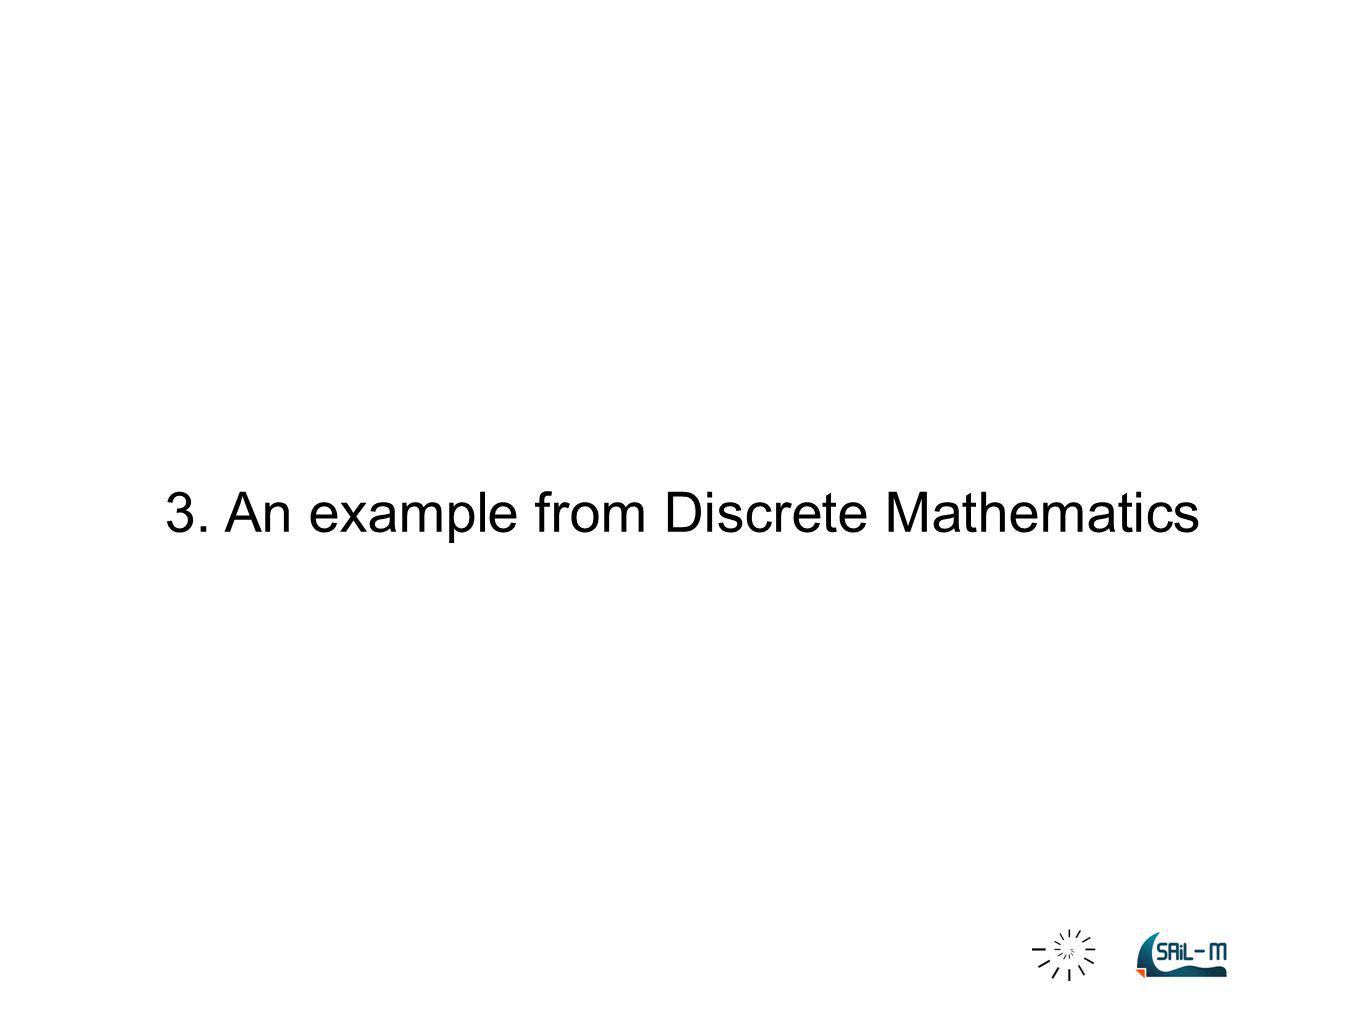 3. An example from Discrete Mathematics